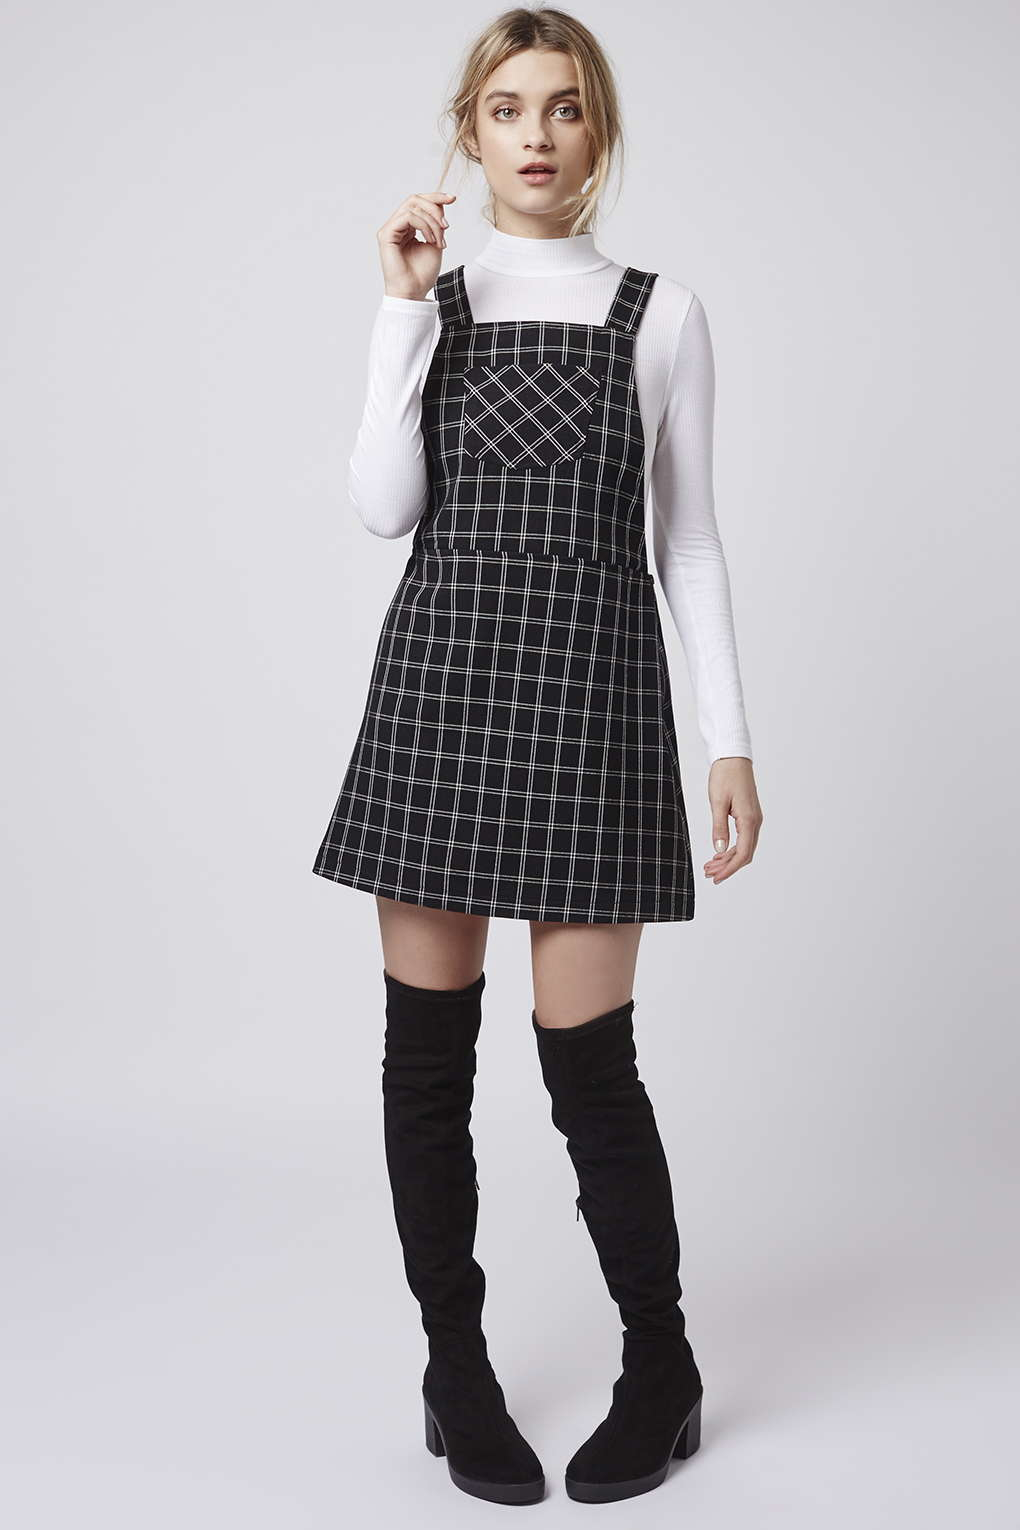 Lyst - Topshop Petite Check Pinafore Dress In Black-3411